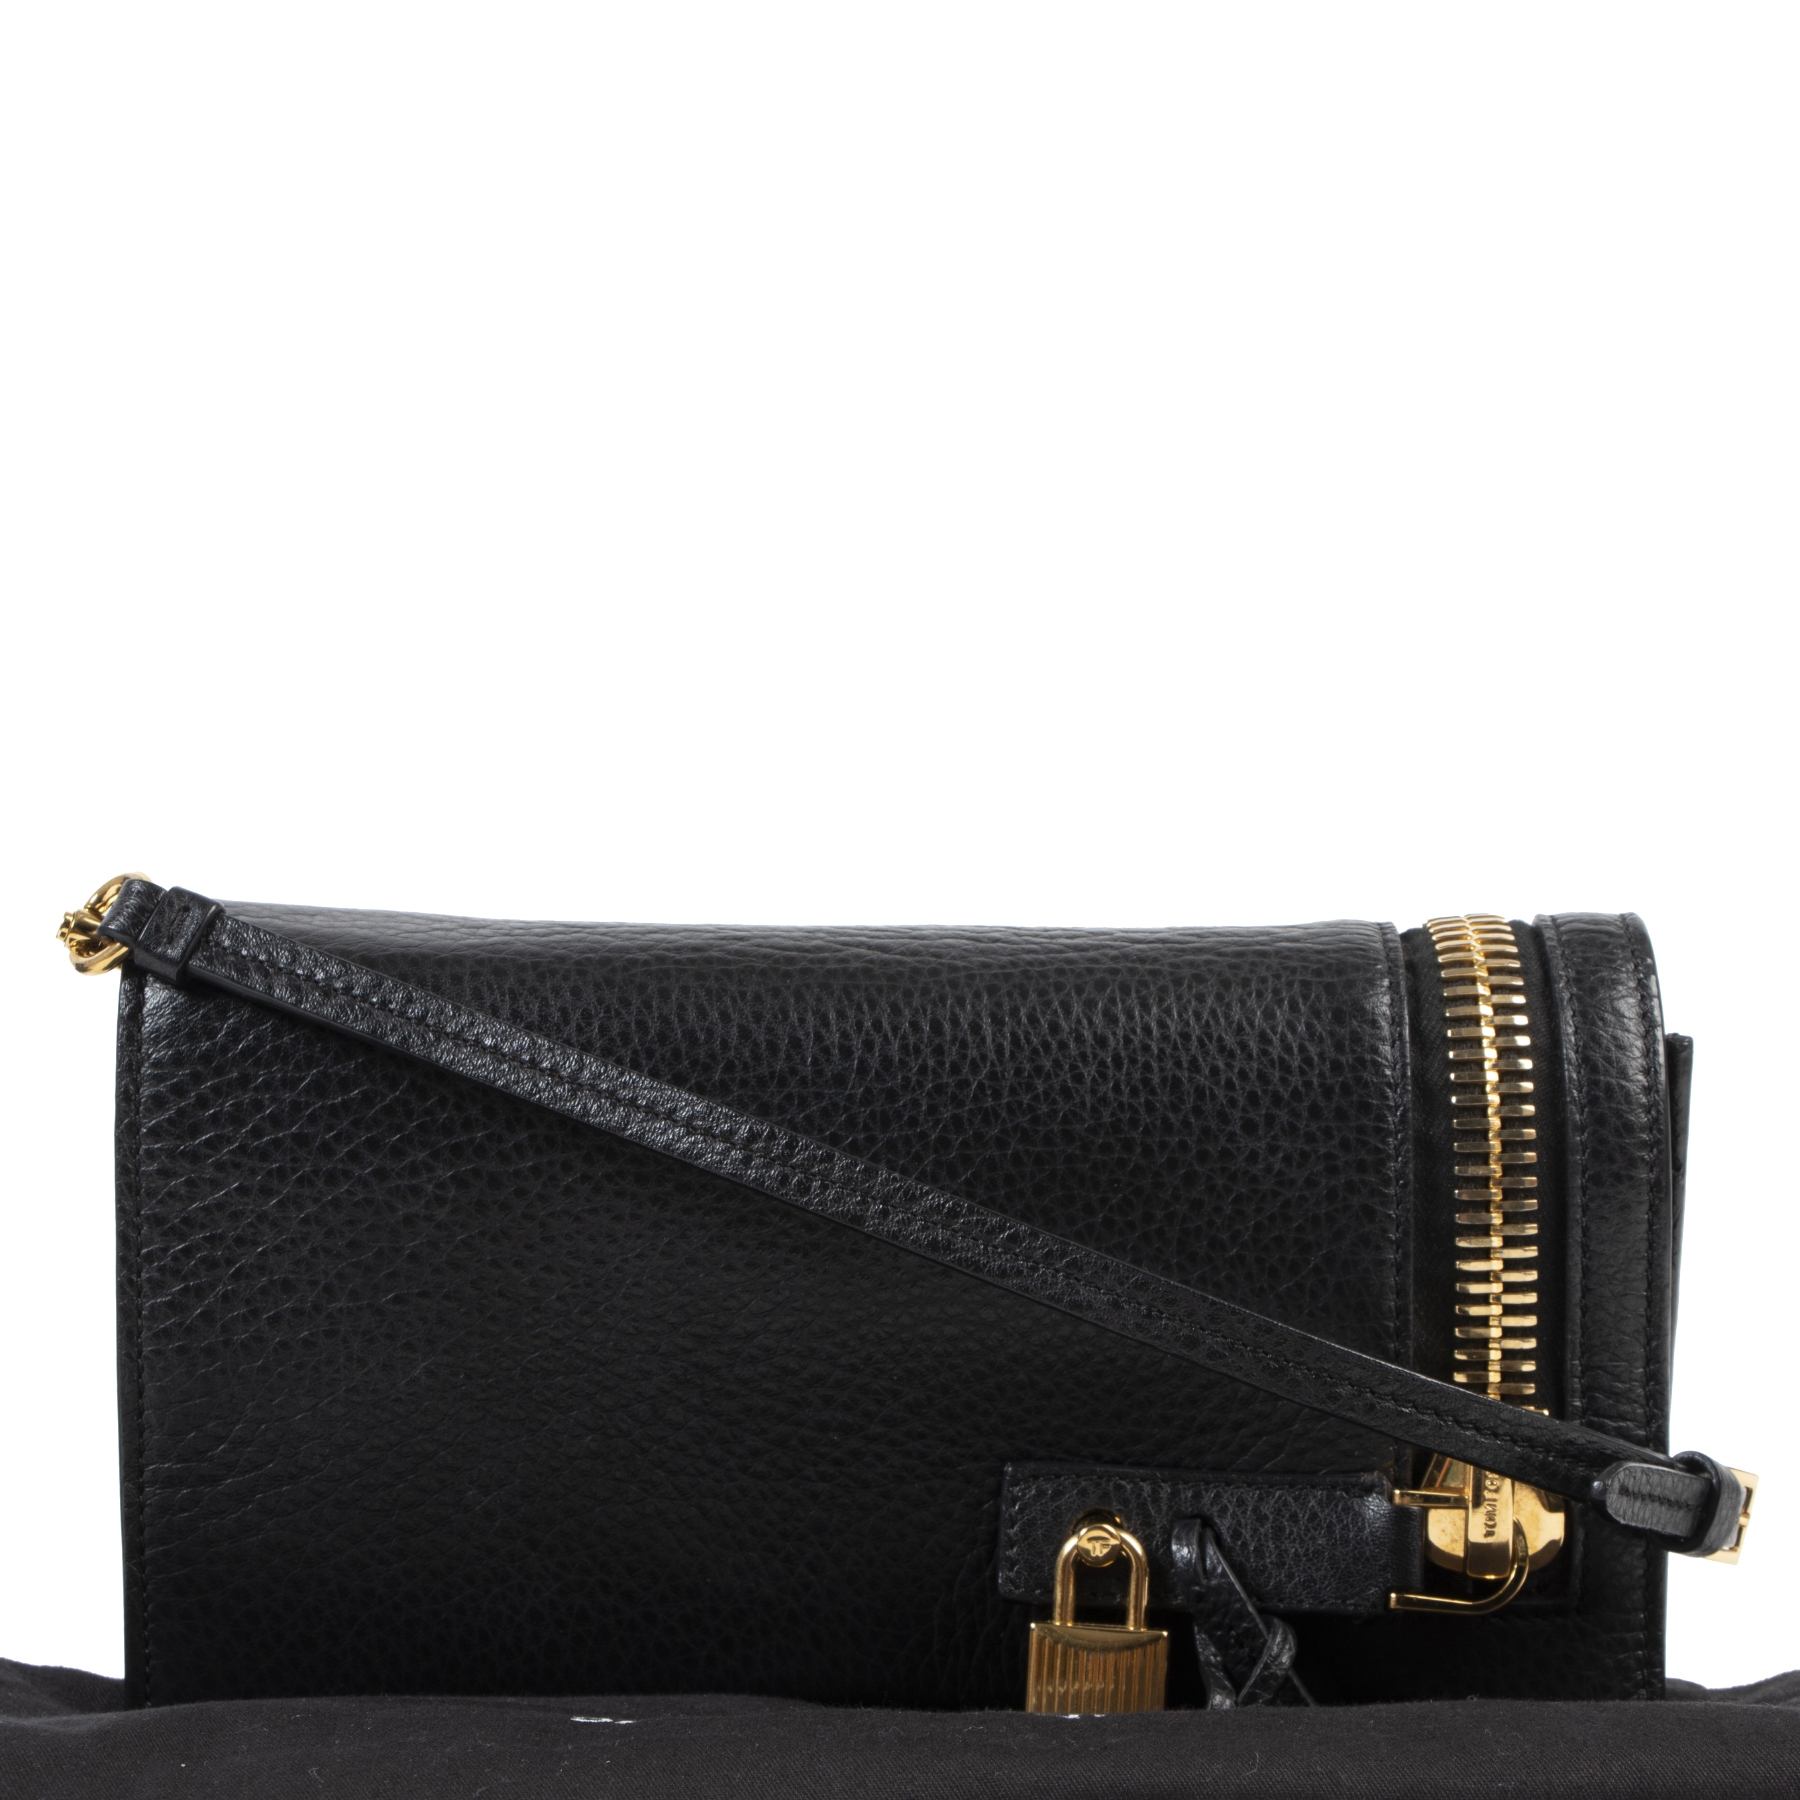 Authentic secondhand Tom Ford Small Alix Black Crossbody Bag designer bags fashion luxury vintage webshop safe secure online shopping